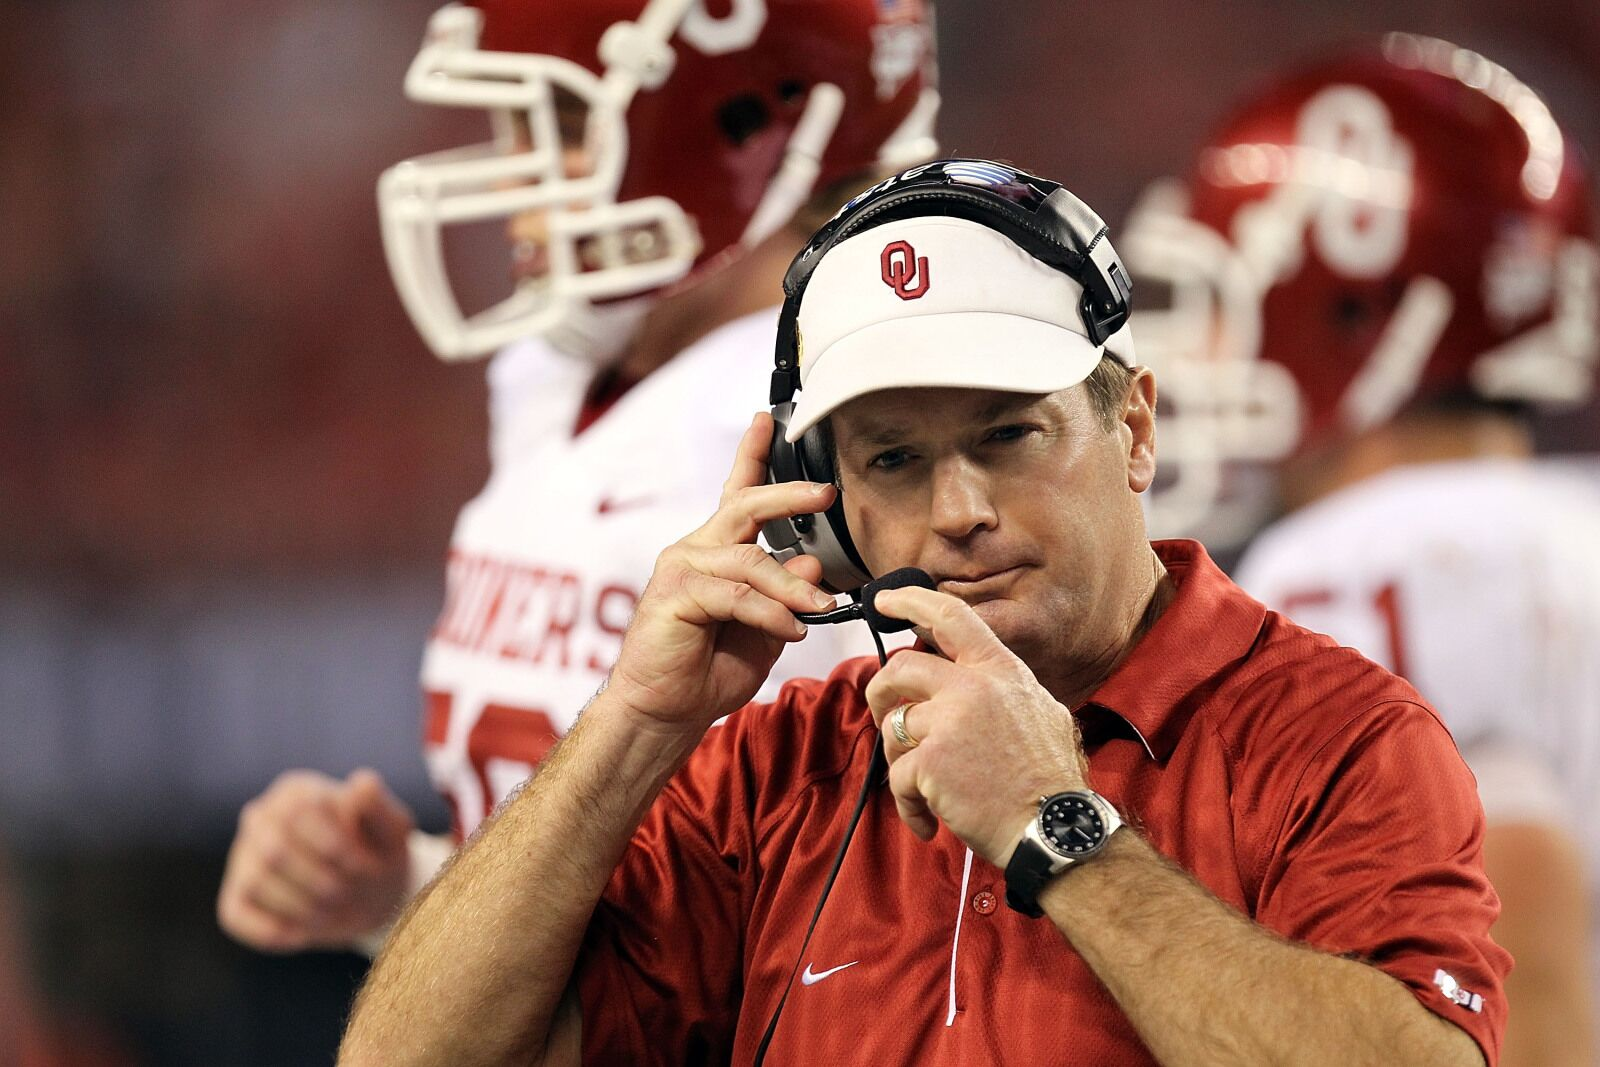 Oklahoma football: What if Stoops had stepped down in 2014?